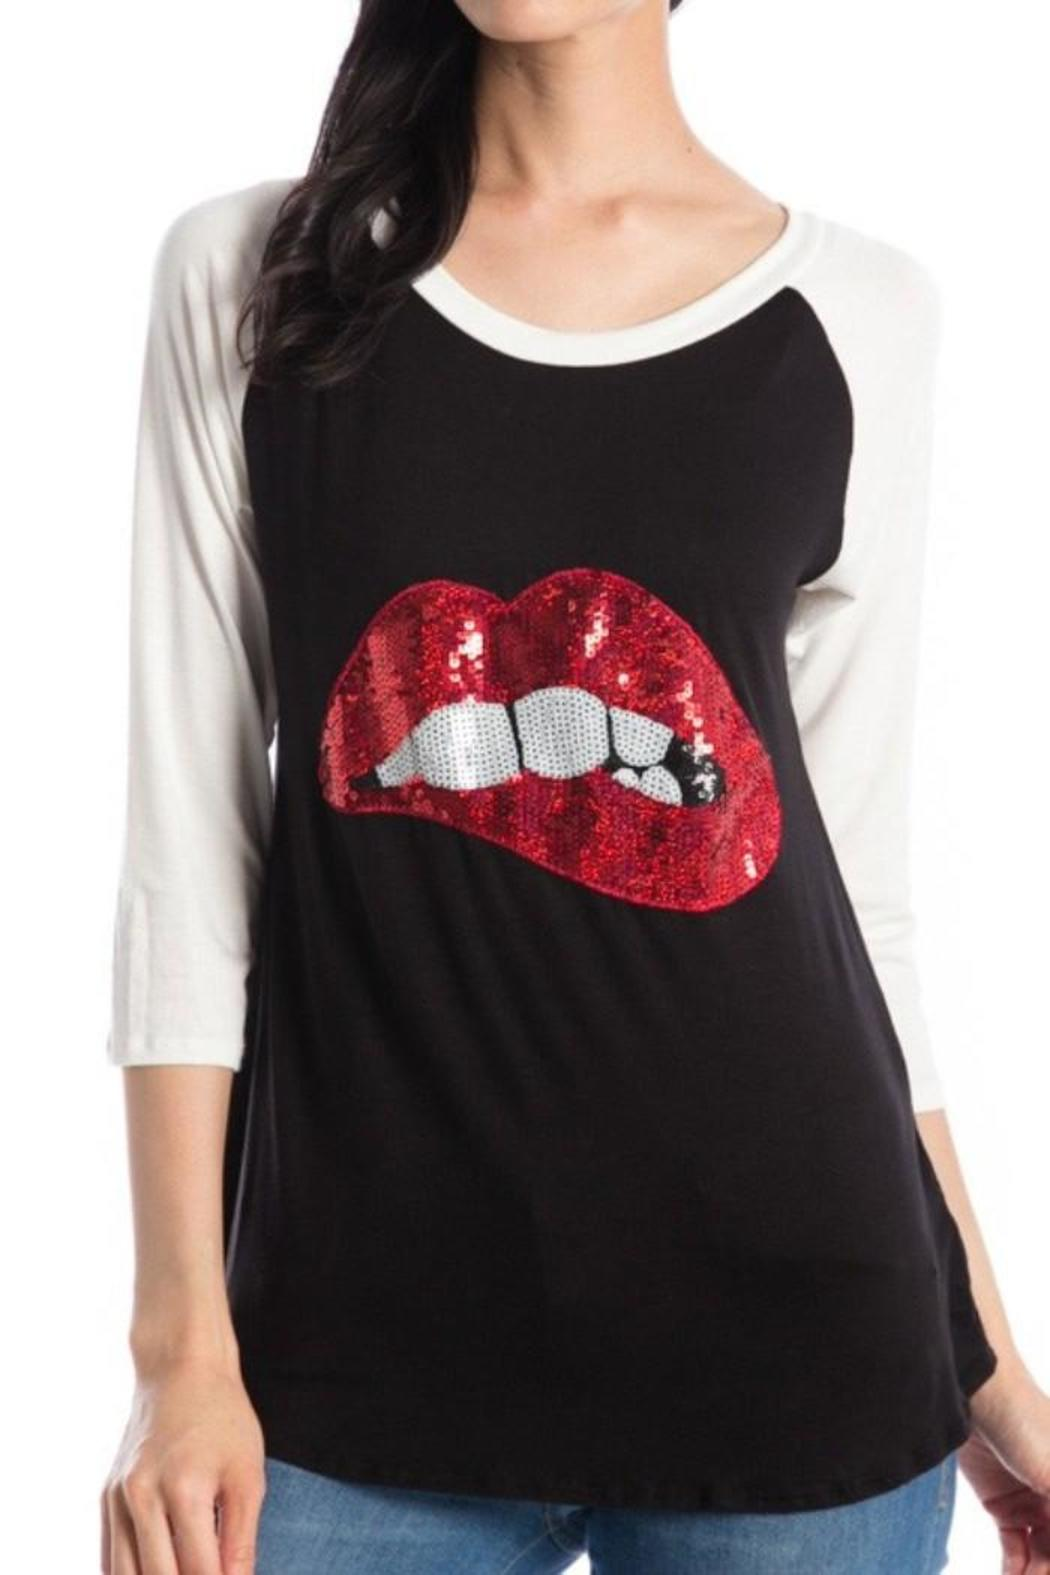 Crystal Art Designs Sequin Lips Shirt From New Jersey